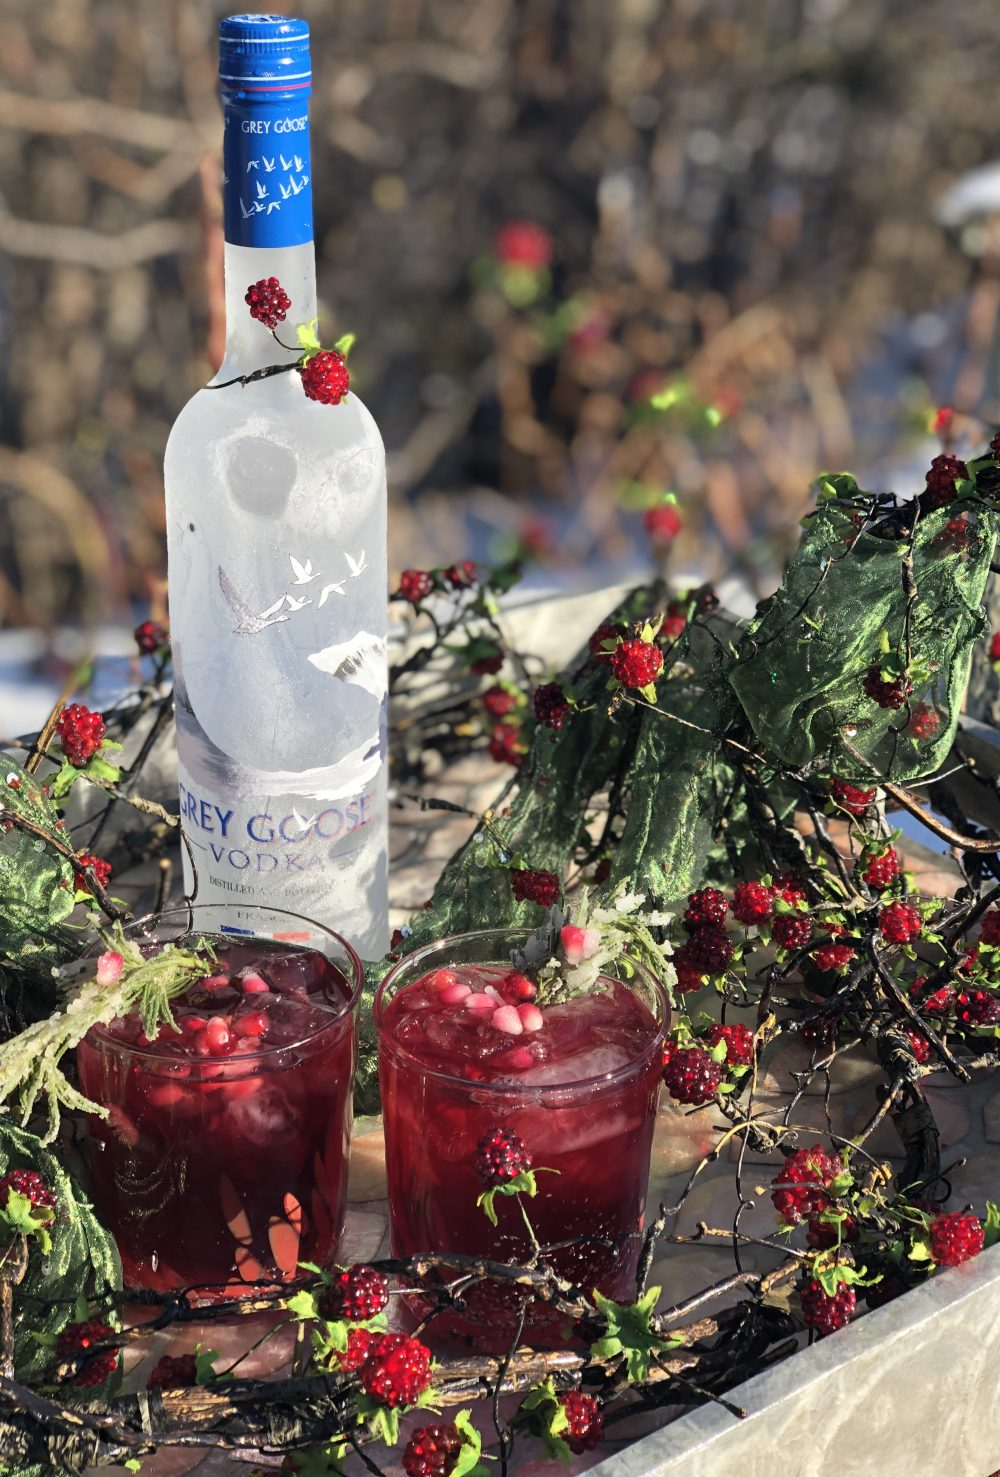 six grey geese a laying vodka cranberry pomegranate holiday cocktail